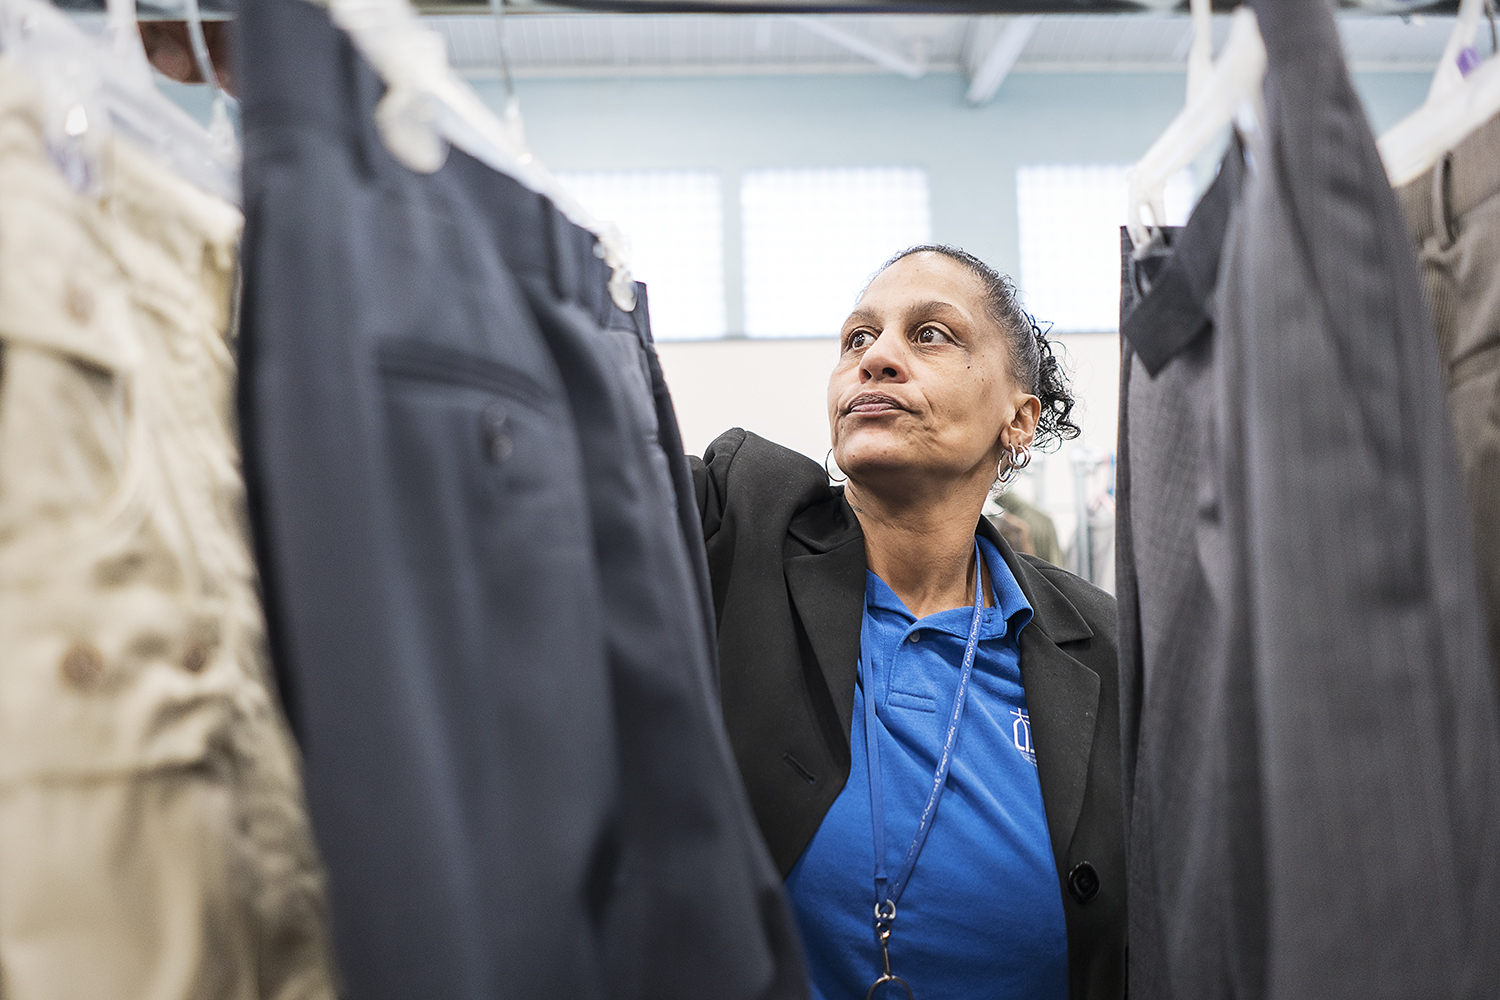 Community Closet Coordinator at the Catholic Charities Center for Hope Redonna Riggs, 47, of Flint, organizes donated clothing hanging from a clothing rack.